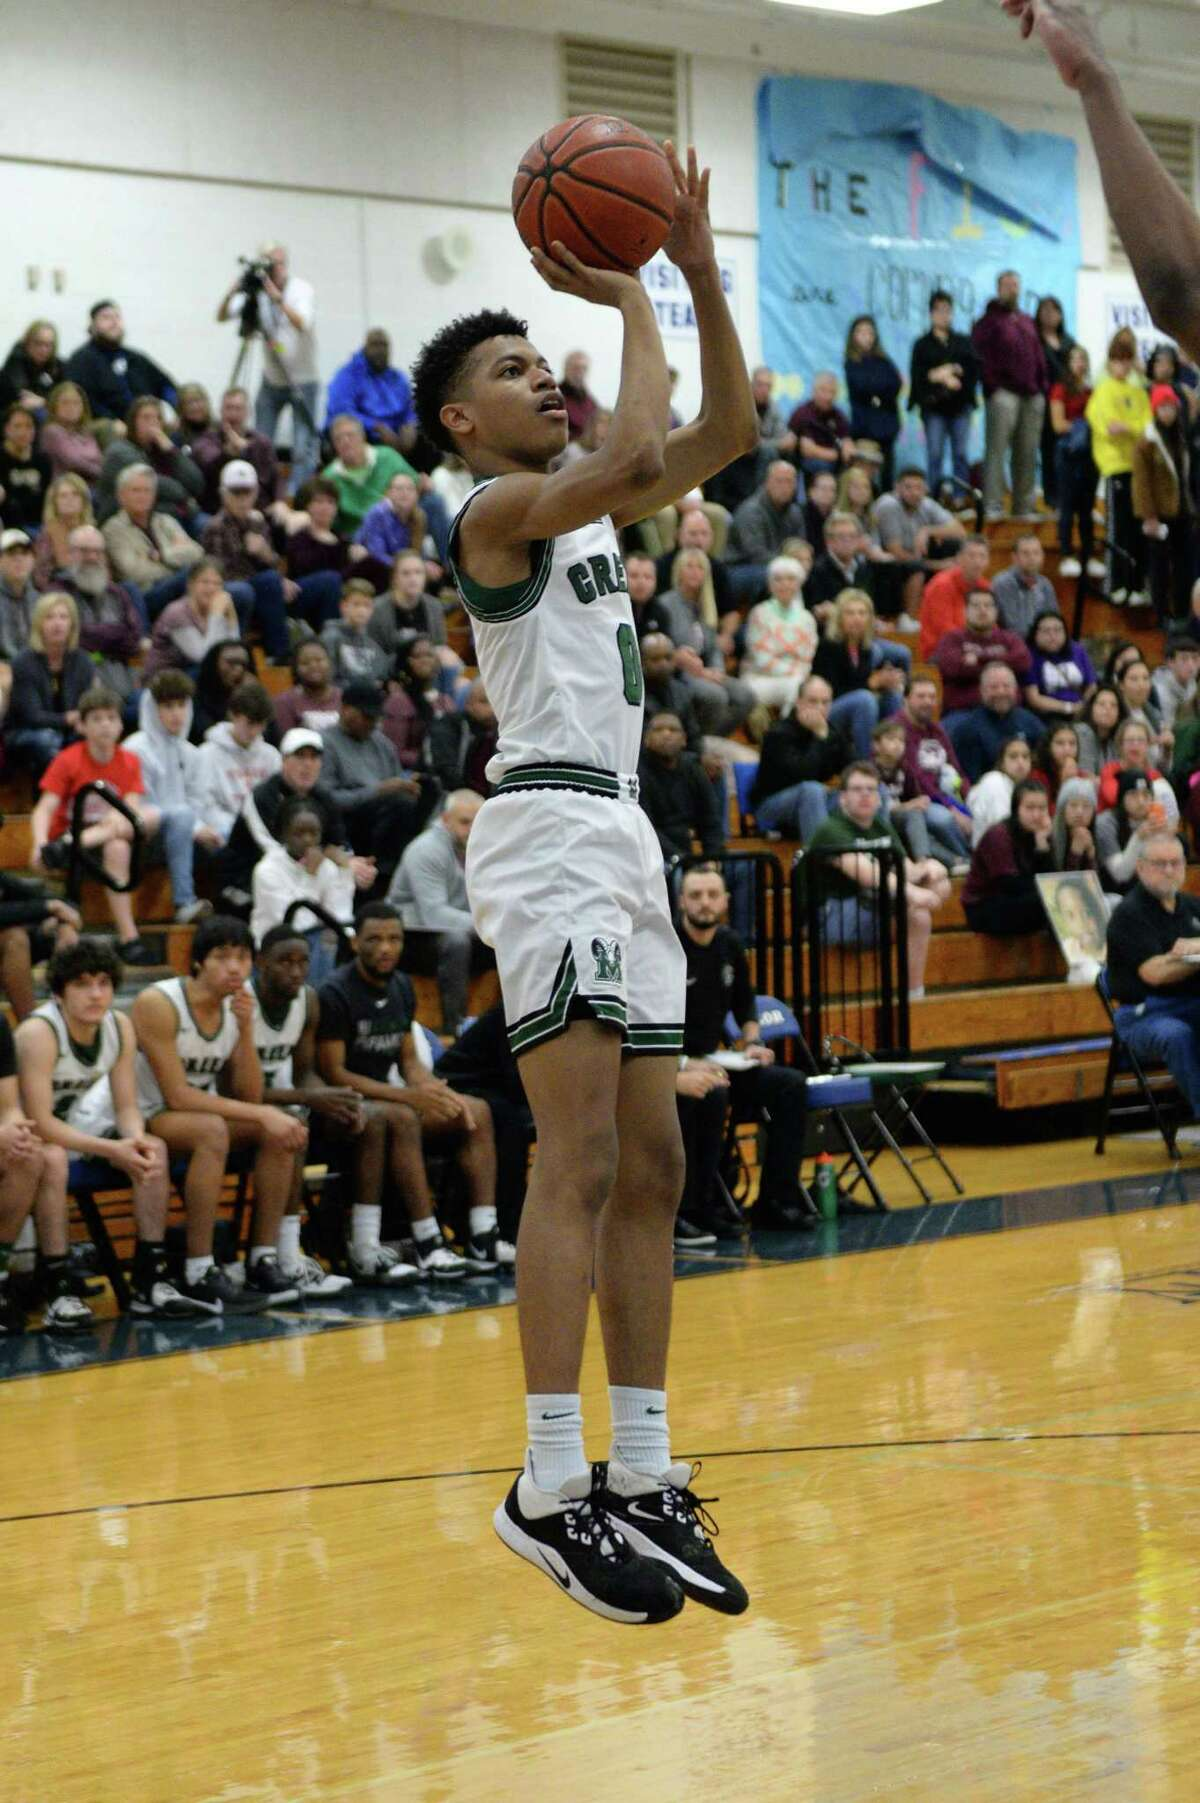 Josh Vanegas (0) of Mayde Creek attempts a jump shot during the second half of a 6A Region III District 19 Boys tie-breaker playoff game between the Cinco Ranch Cougars and the Mayde Creek Rams on Friday, February 21, 2020 at Taylor HS, Katy, TX.